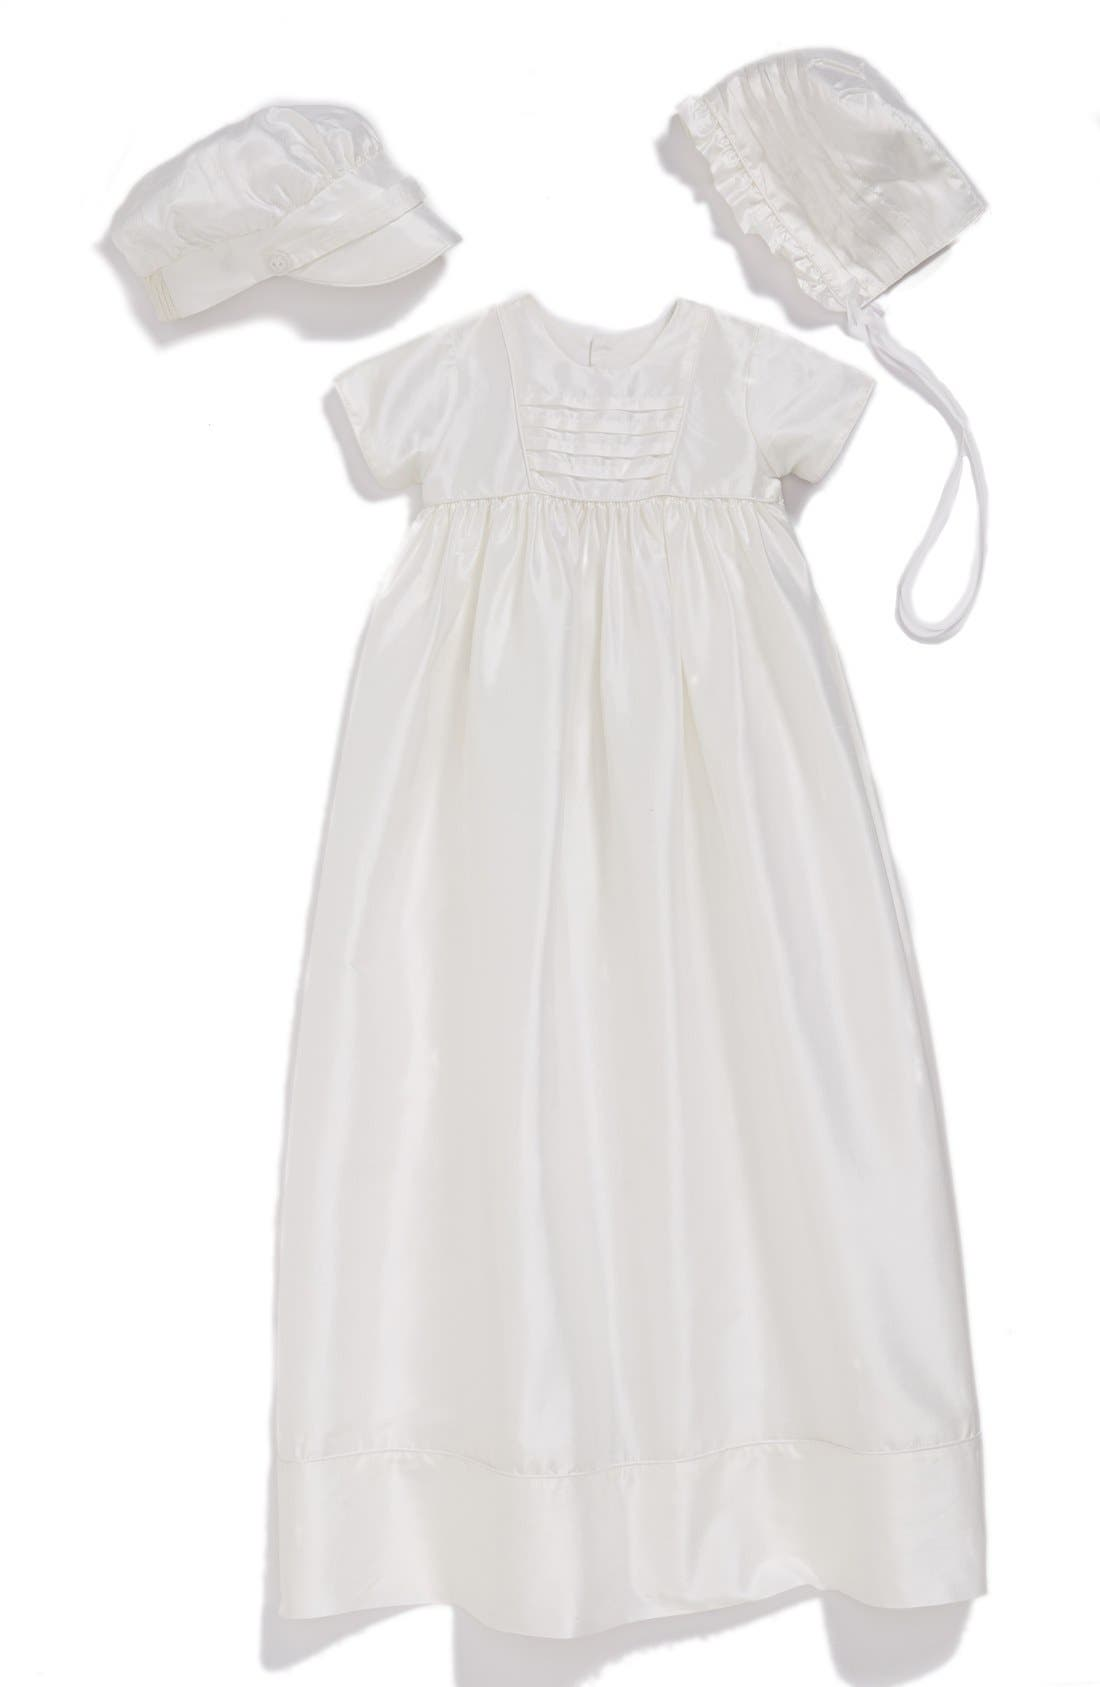 Dupioni Christening Gown with Hat and Bonnet Set,                             Main thumbnail 1, color,                             White